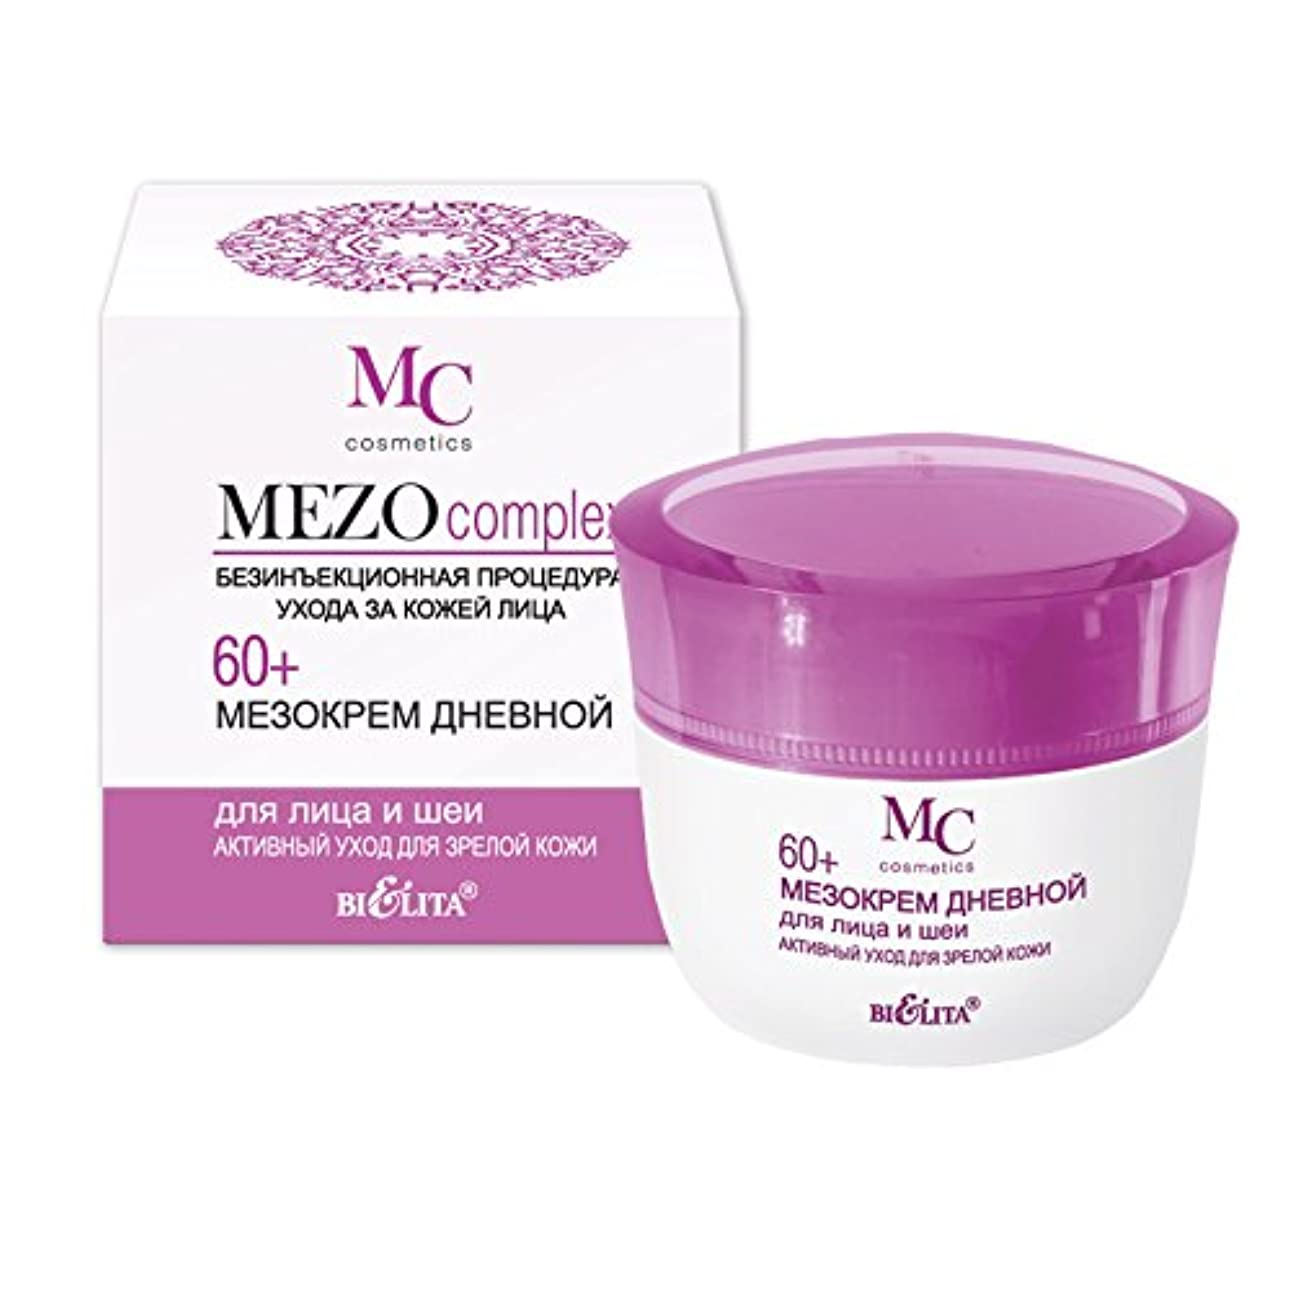 Saturated Day Cream (MEZO) is specially designed for the care of mature skin of the face | Hyaluronic acid, Vitamin...